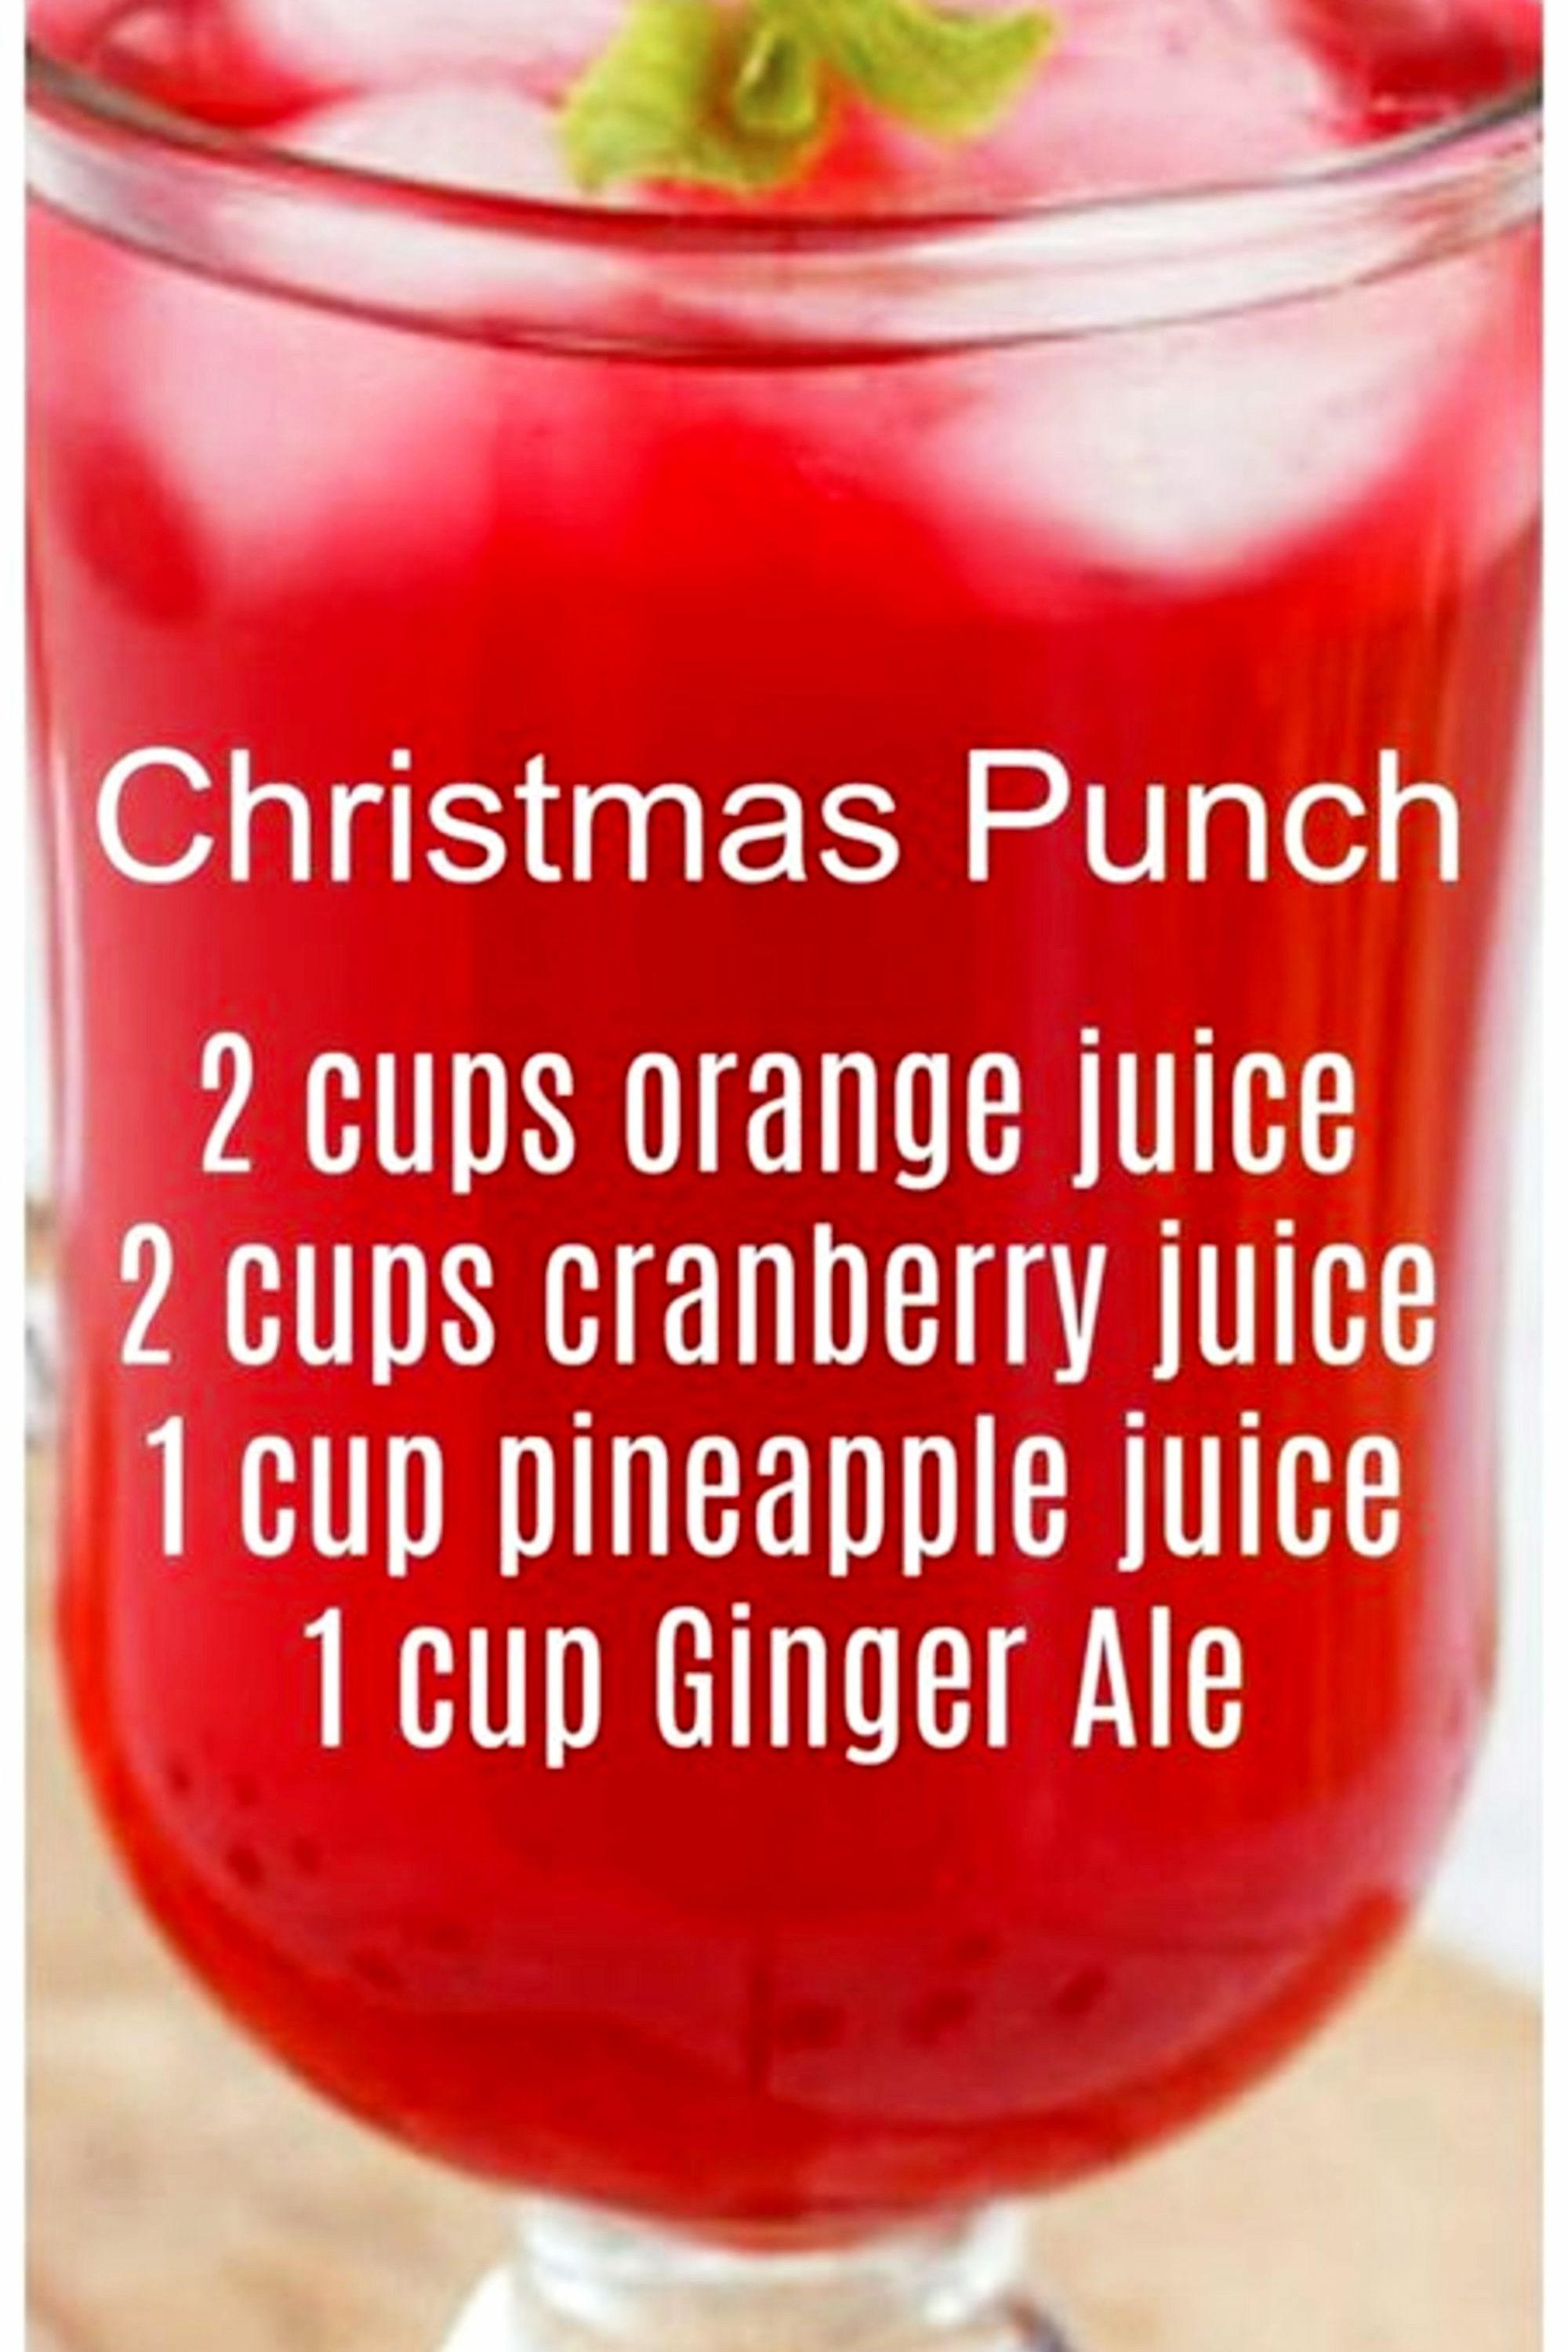 11 Easy Punch Recipes For A Crowd Simple Party Drinks Ideas Both Nonalcoholic And With Alcohol Clever Diy Ideas Christmas Punch Recipes Easy Punch Recipes Party Punch Recipes